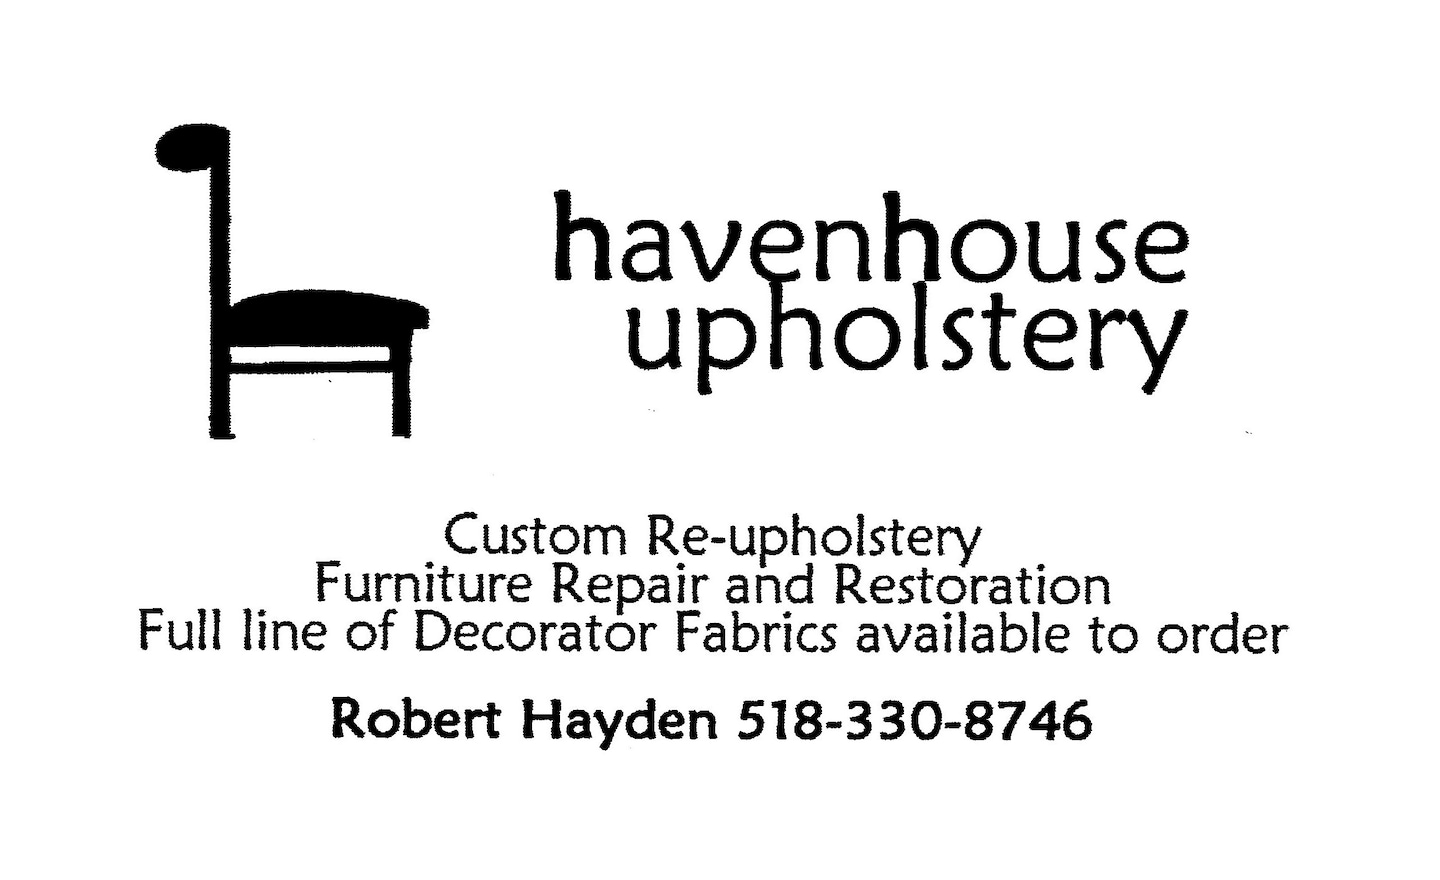 Havenhouse Upholstery